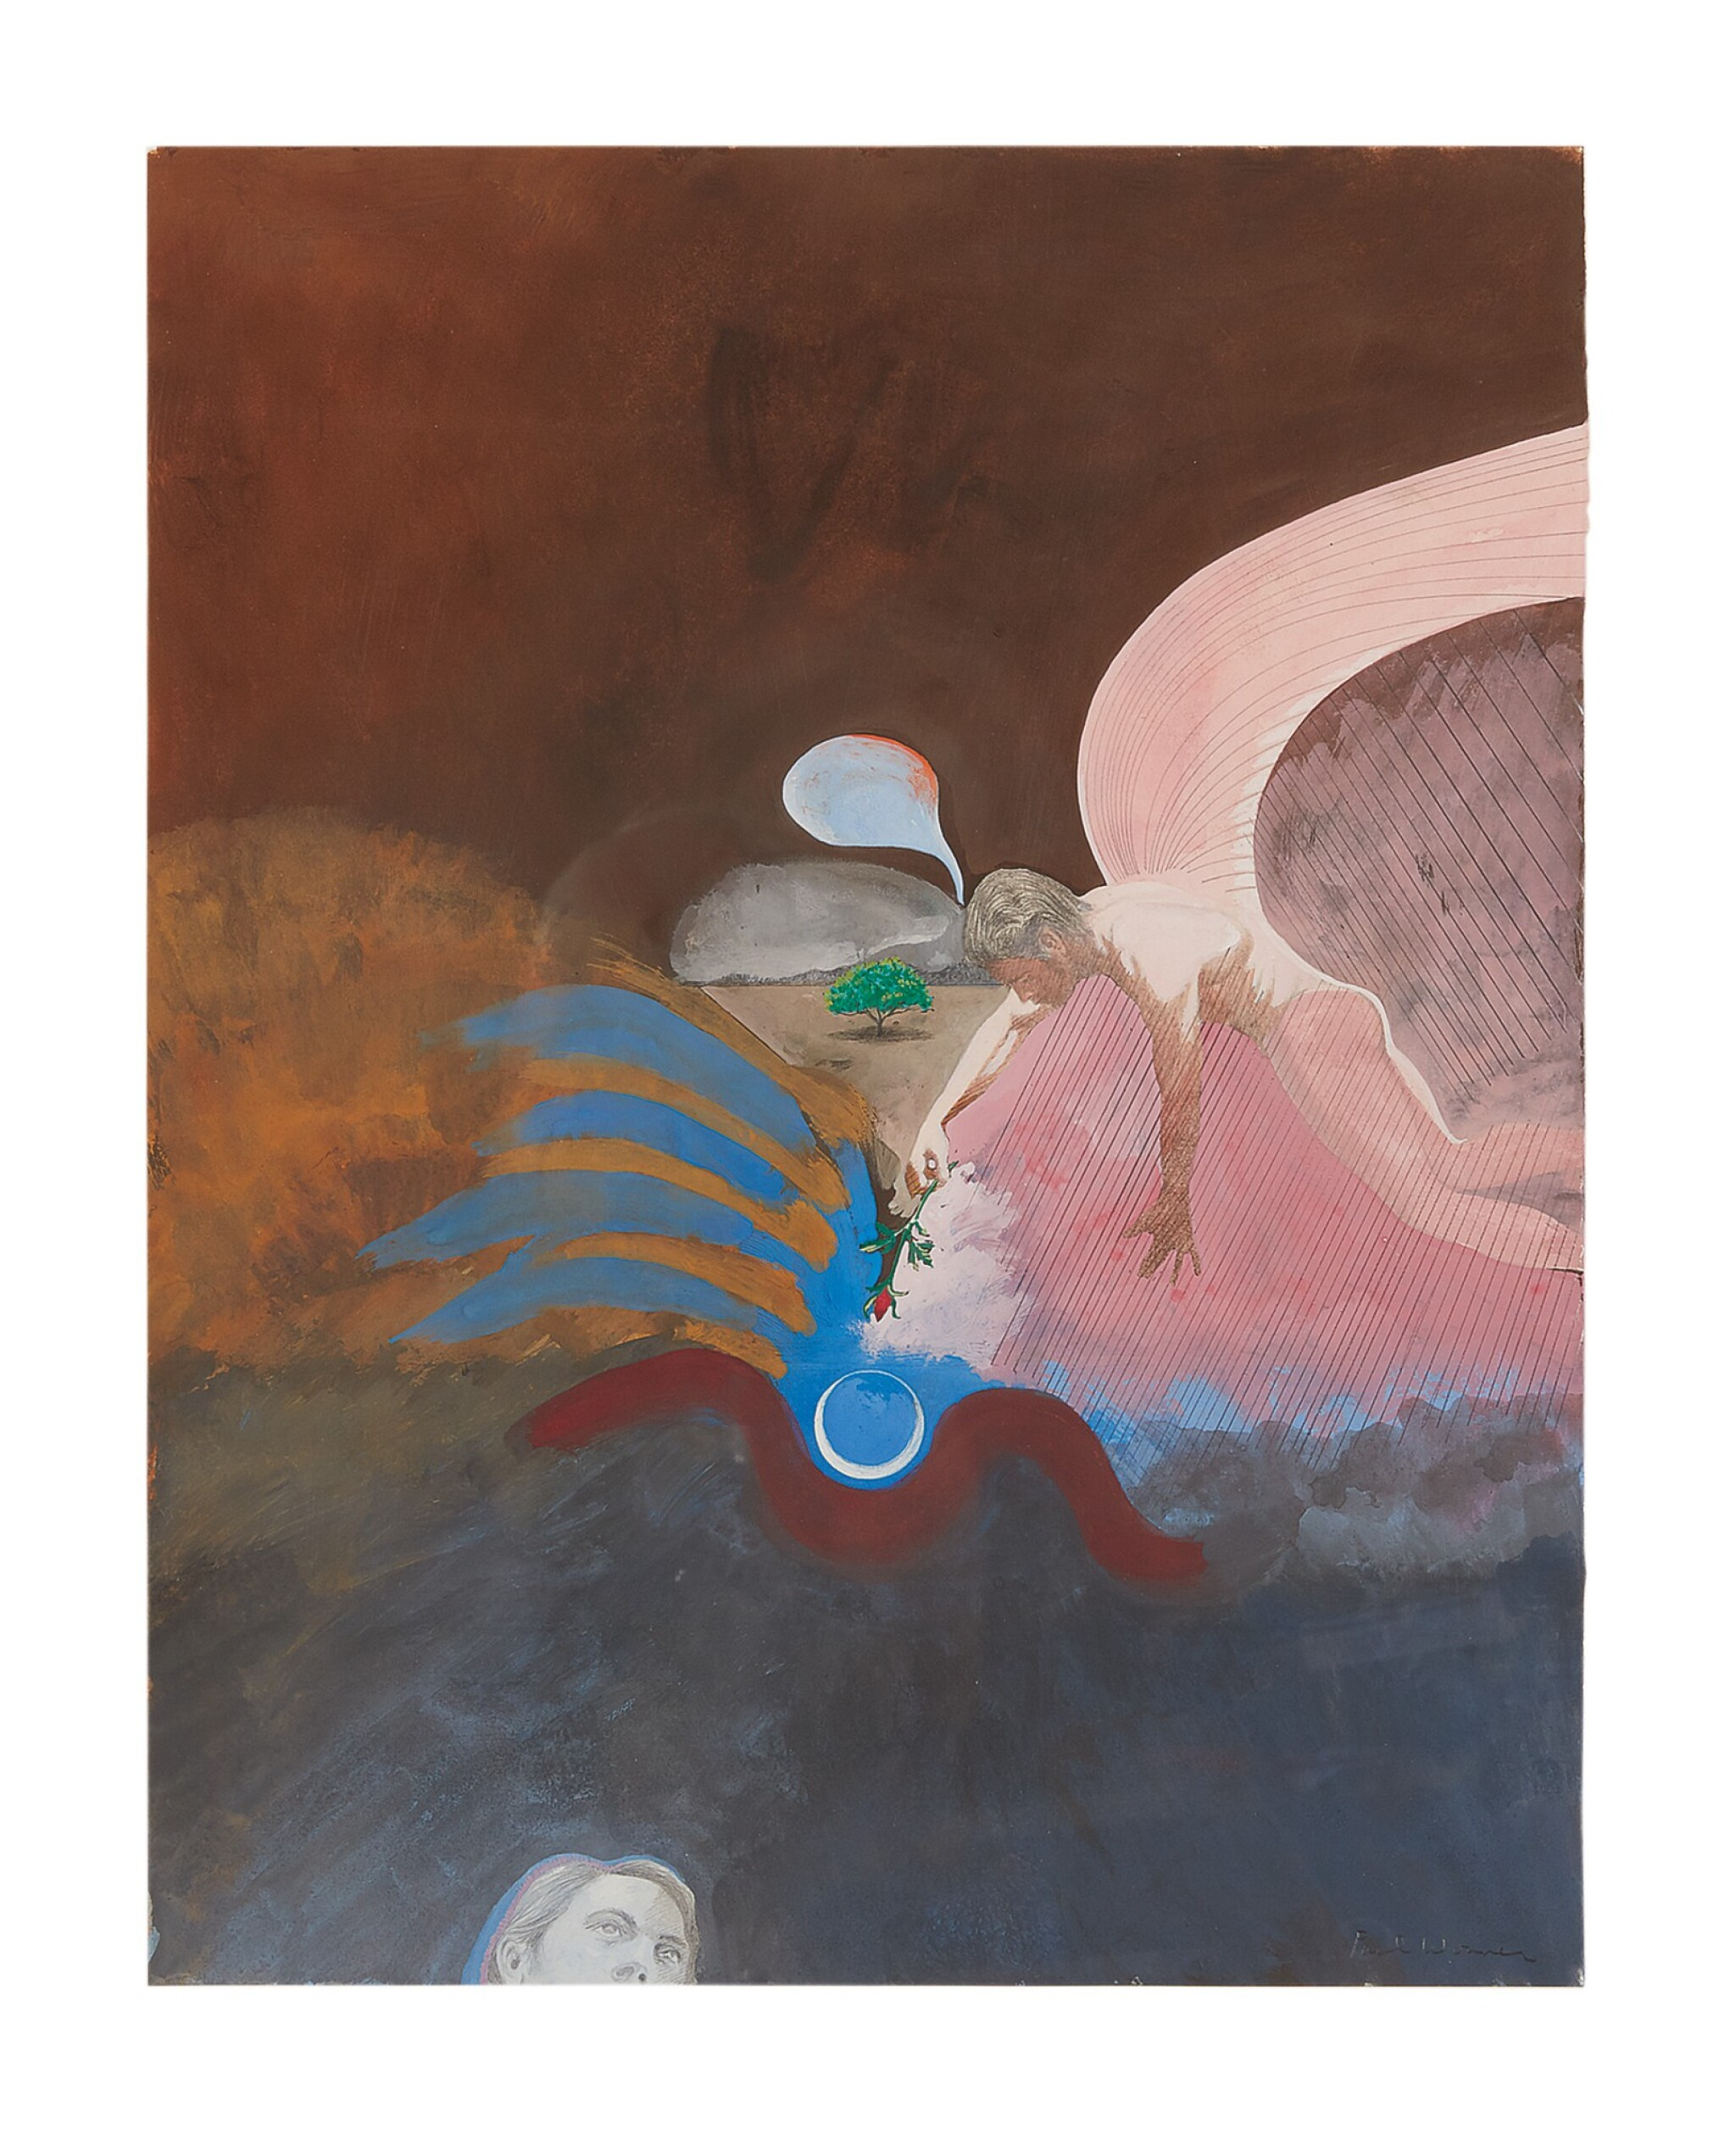 PAUL WONNER | ILLUSTRATIONS FOR POEMS OF ST. JOHN OF THE CROSS: ON THE IMMACULATE CONCEPTION